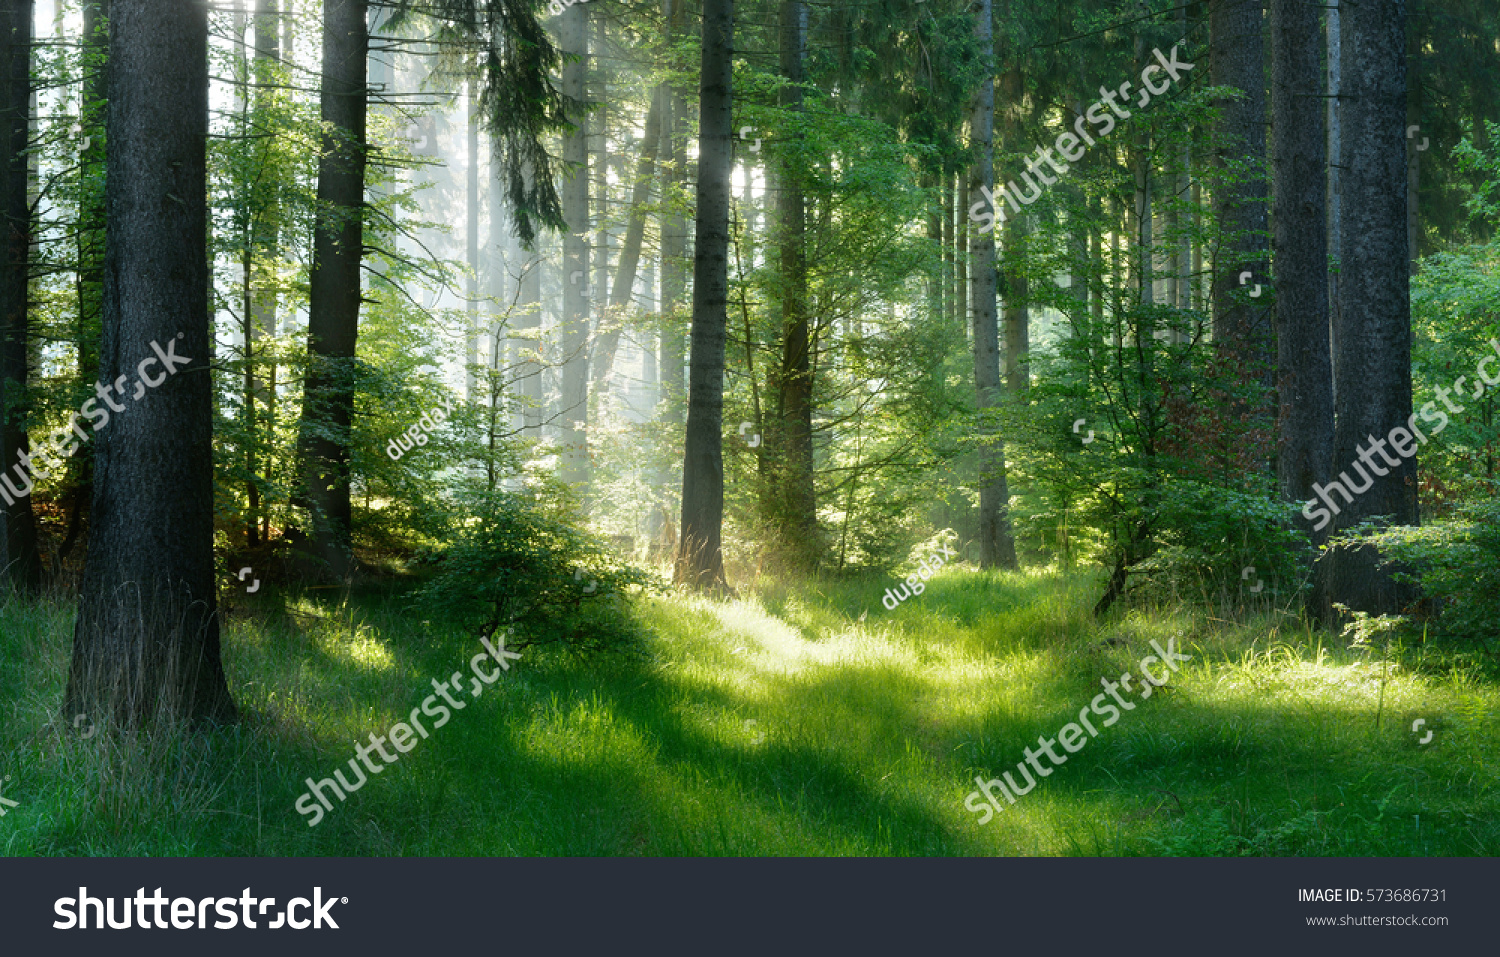 Natural Forest of Spruce Trees, Sunbeams through Fog create mystic Atmosphere #573686731